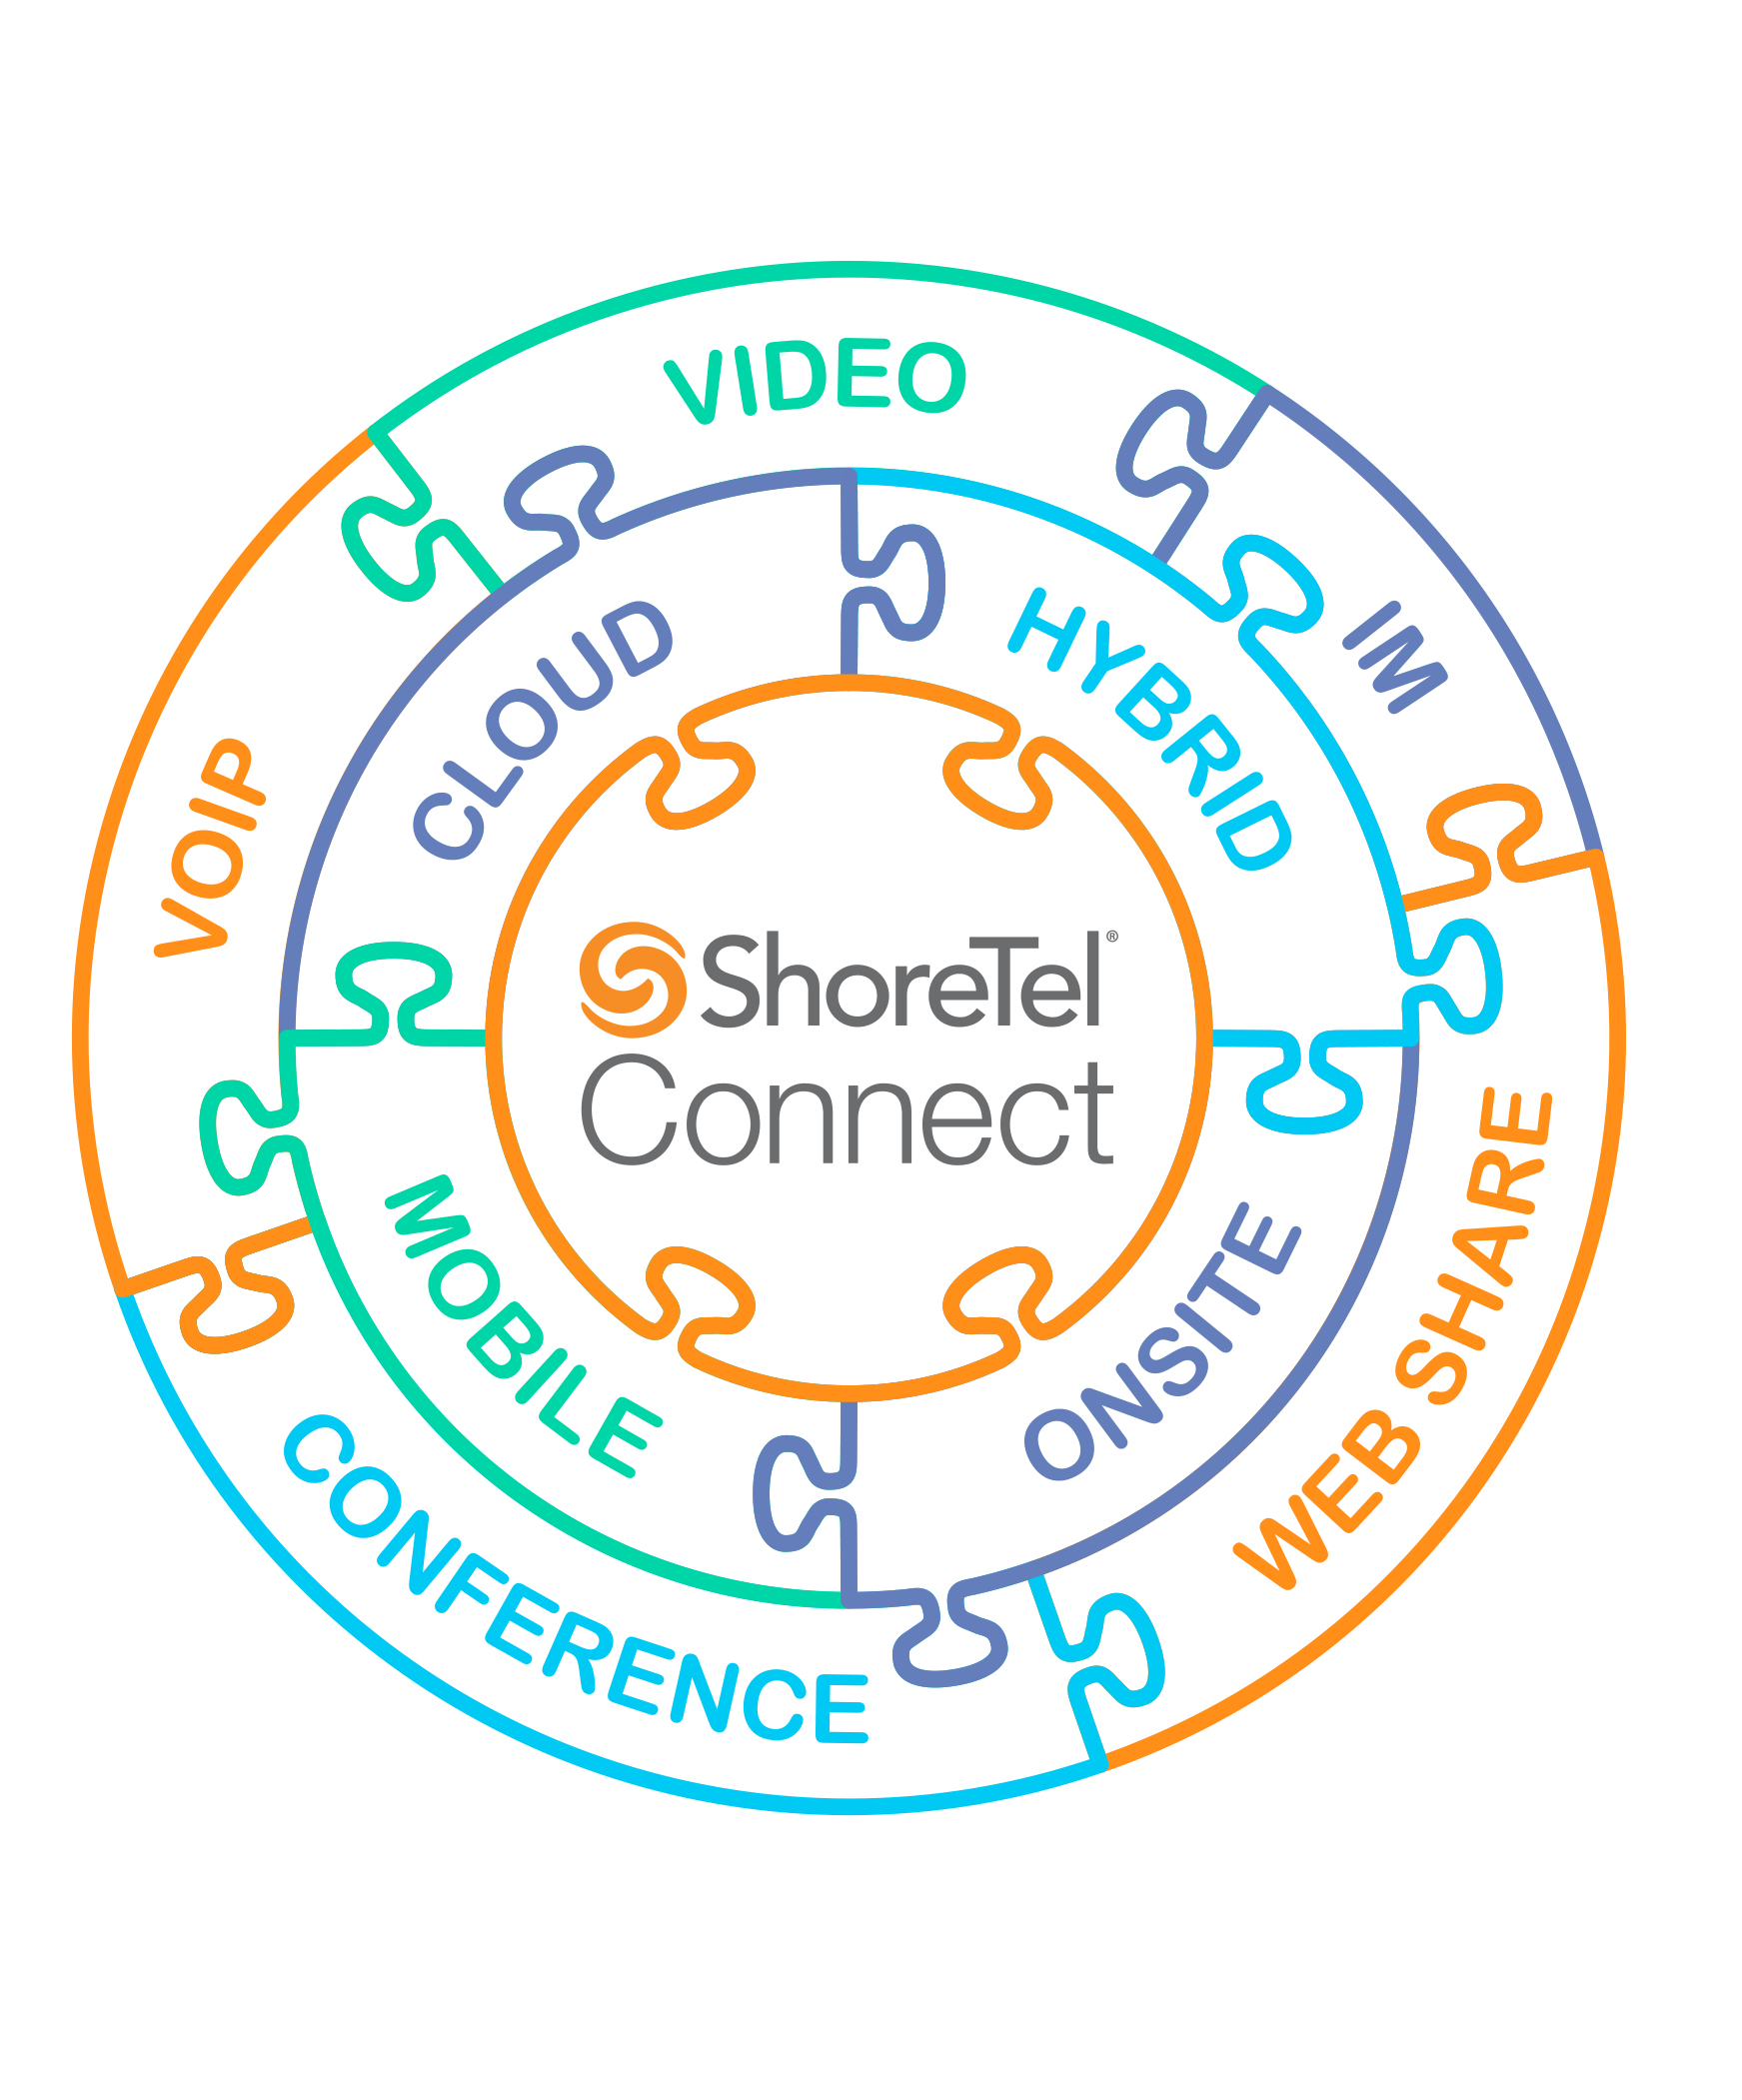 Premise System - Learn more about keeping your options open with the ShoreTel Premise SystemCheck out the many ways how teaming up with Xlcon and ShoreTel can benefit your business in ways you didn't even know were possible!